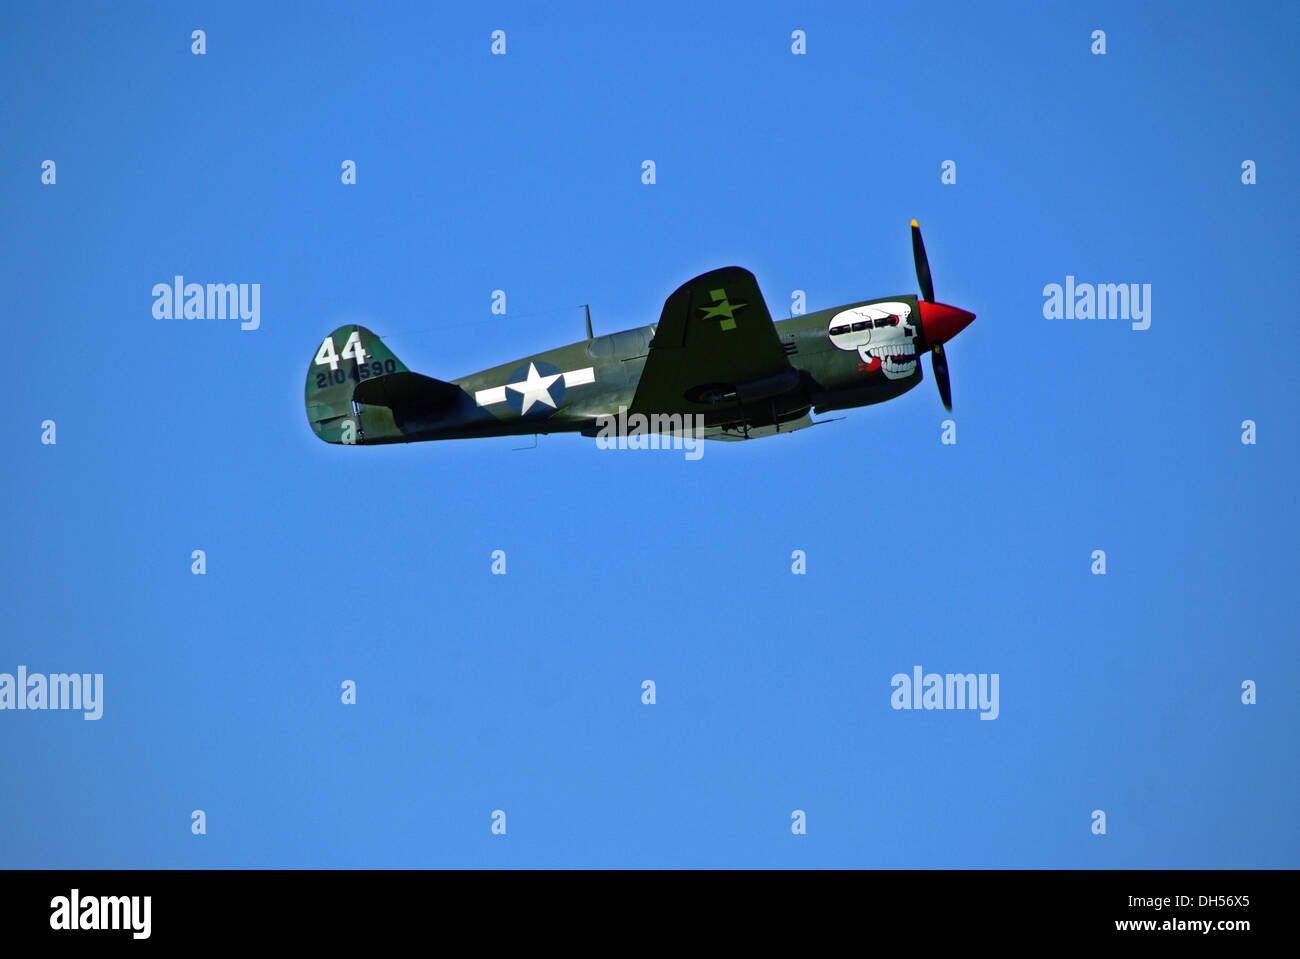 P-40 Curtiss Kittyhawk Flying Against Clear Blue Sky at Sywell Piston and Props Show - Stock Image